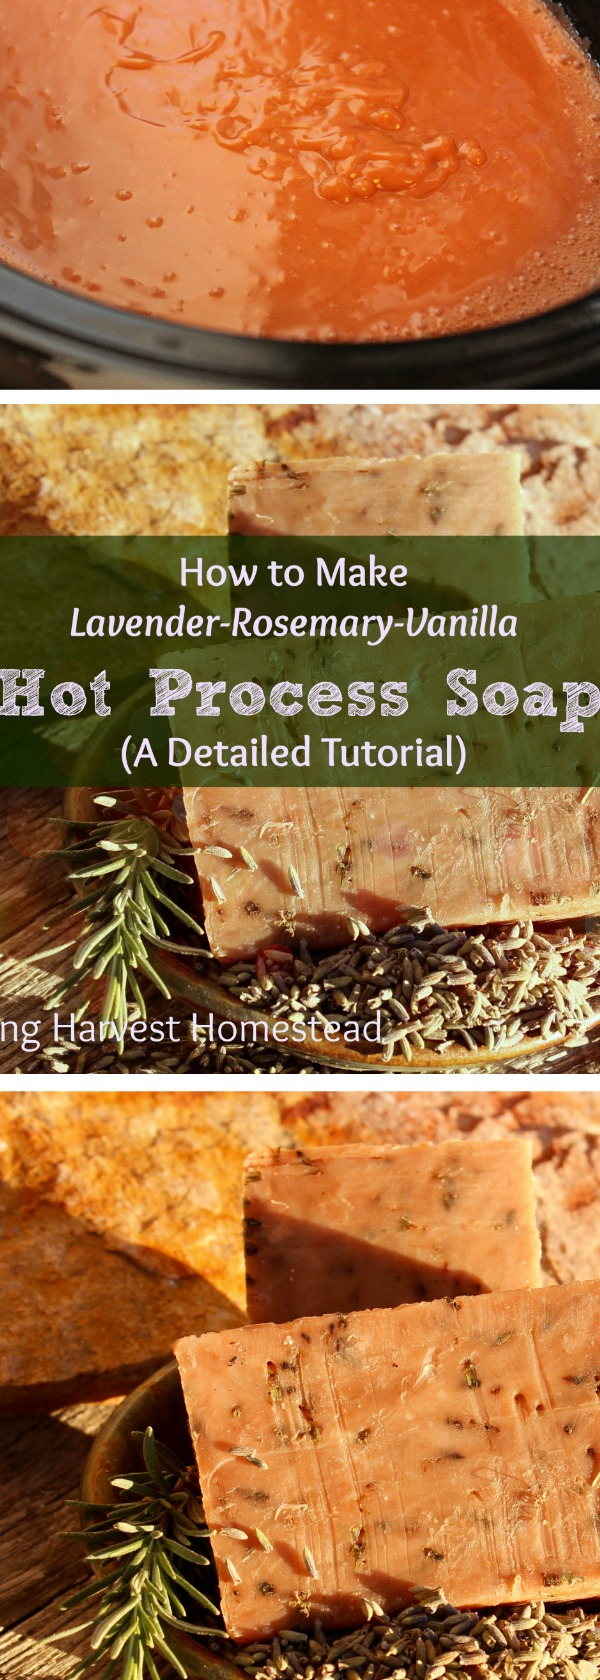 There's nothing like handmade natural soap, right? Have you ever wanted to make your own, but been a little afraid of the lye? Well, fear no more! Here is a SUPER detailed picture tutorial for Lavender-Rosemary-Vanilla Hot Process Soap. The great thing about making Hot Process Soap is that it's ready right away! This soap is infused with pink clay and textured with lavender flowers. It's scented naturally with essential oils! You'll LOVE it!